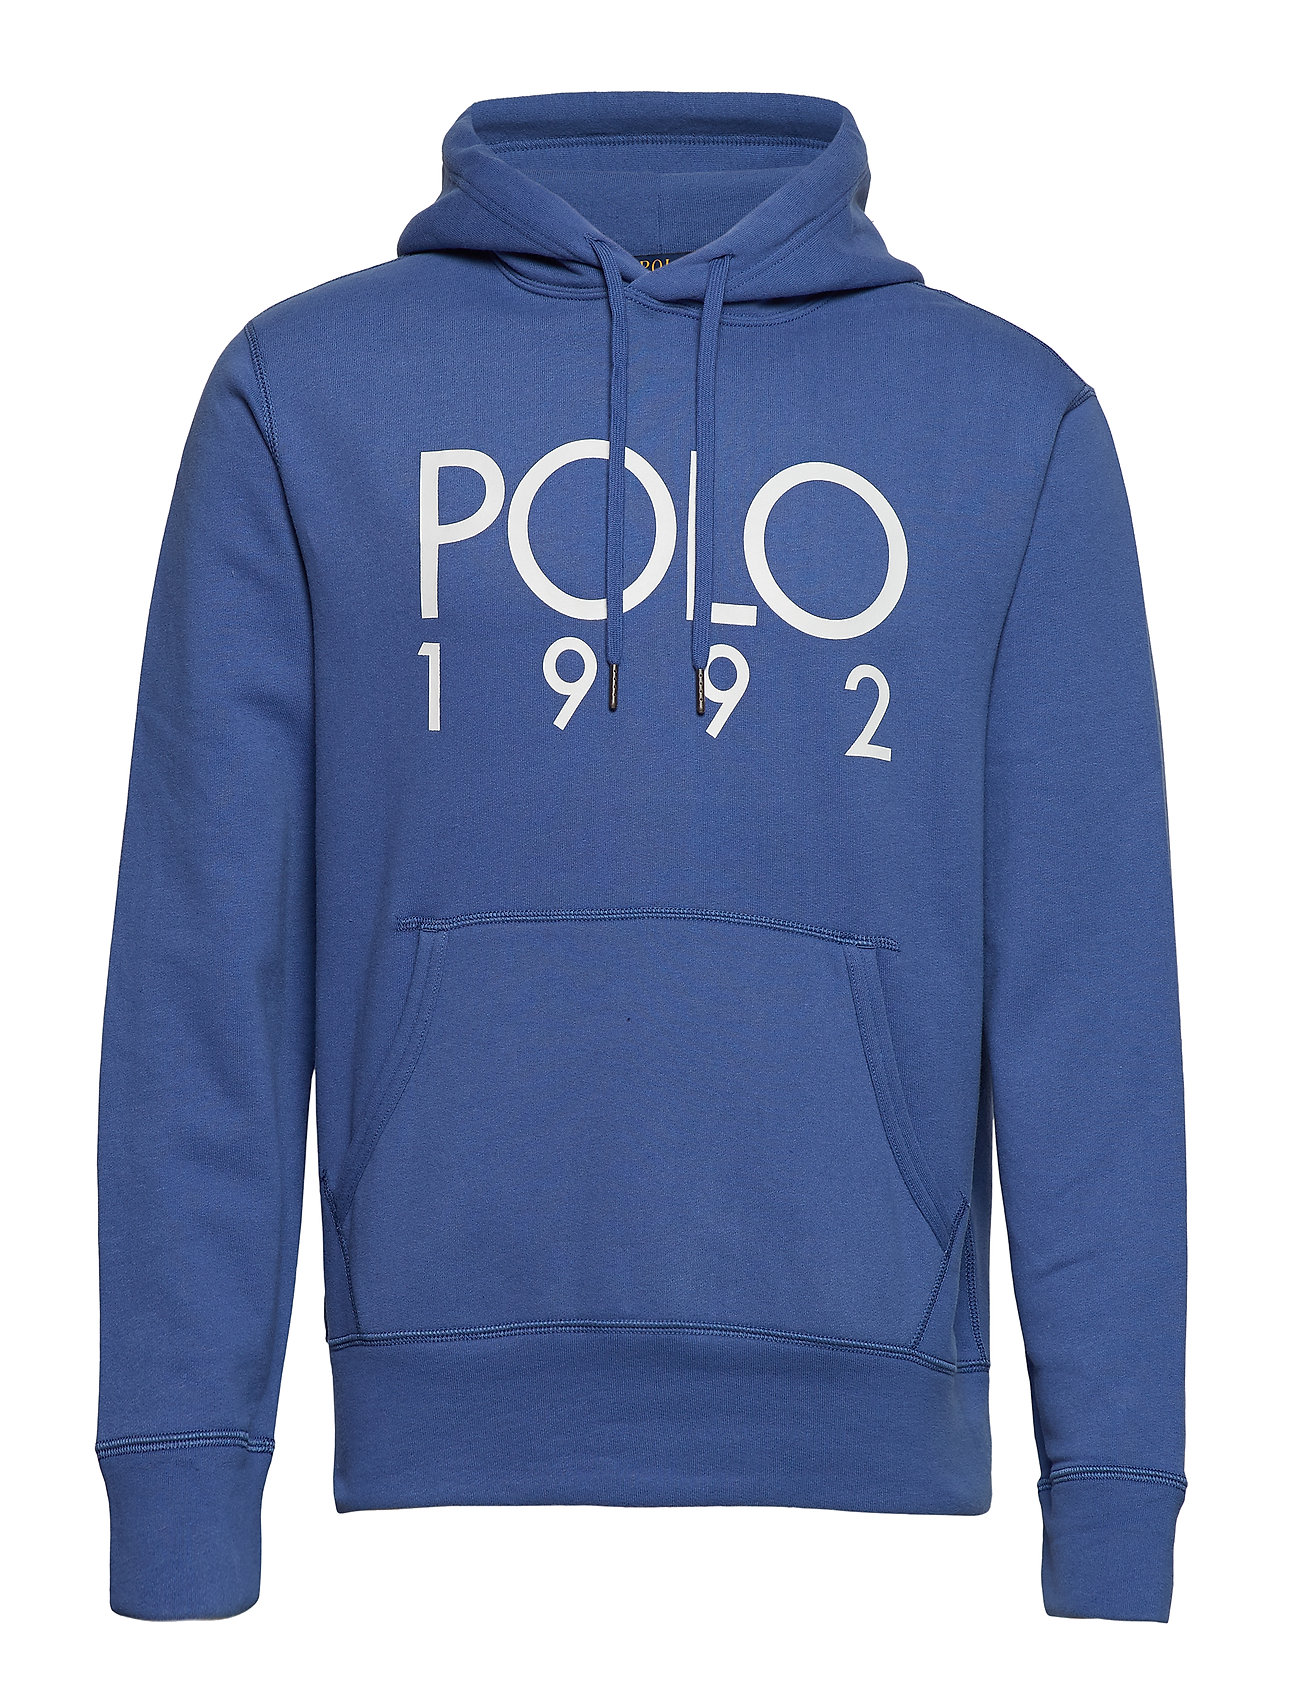 Polo Ralph Lauren Cotton Blend Graphic Hoodie Ögrönlar